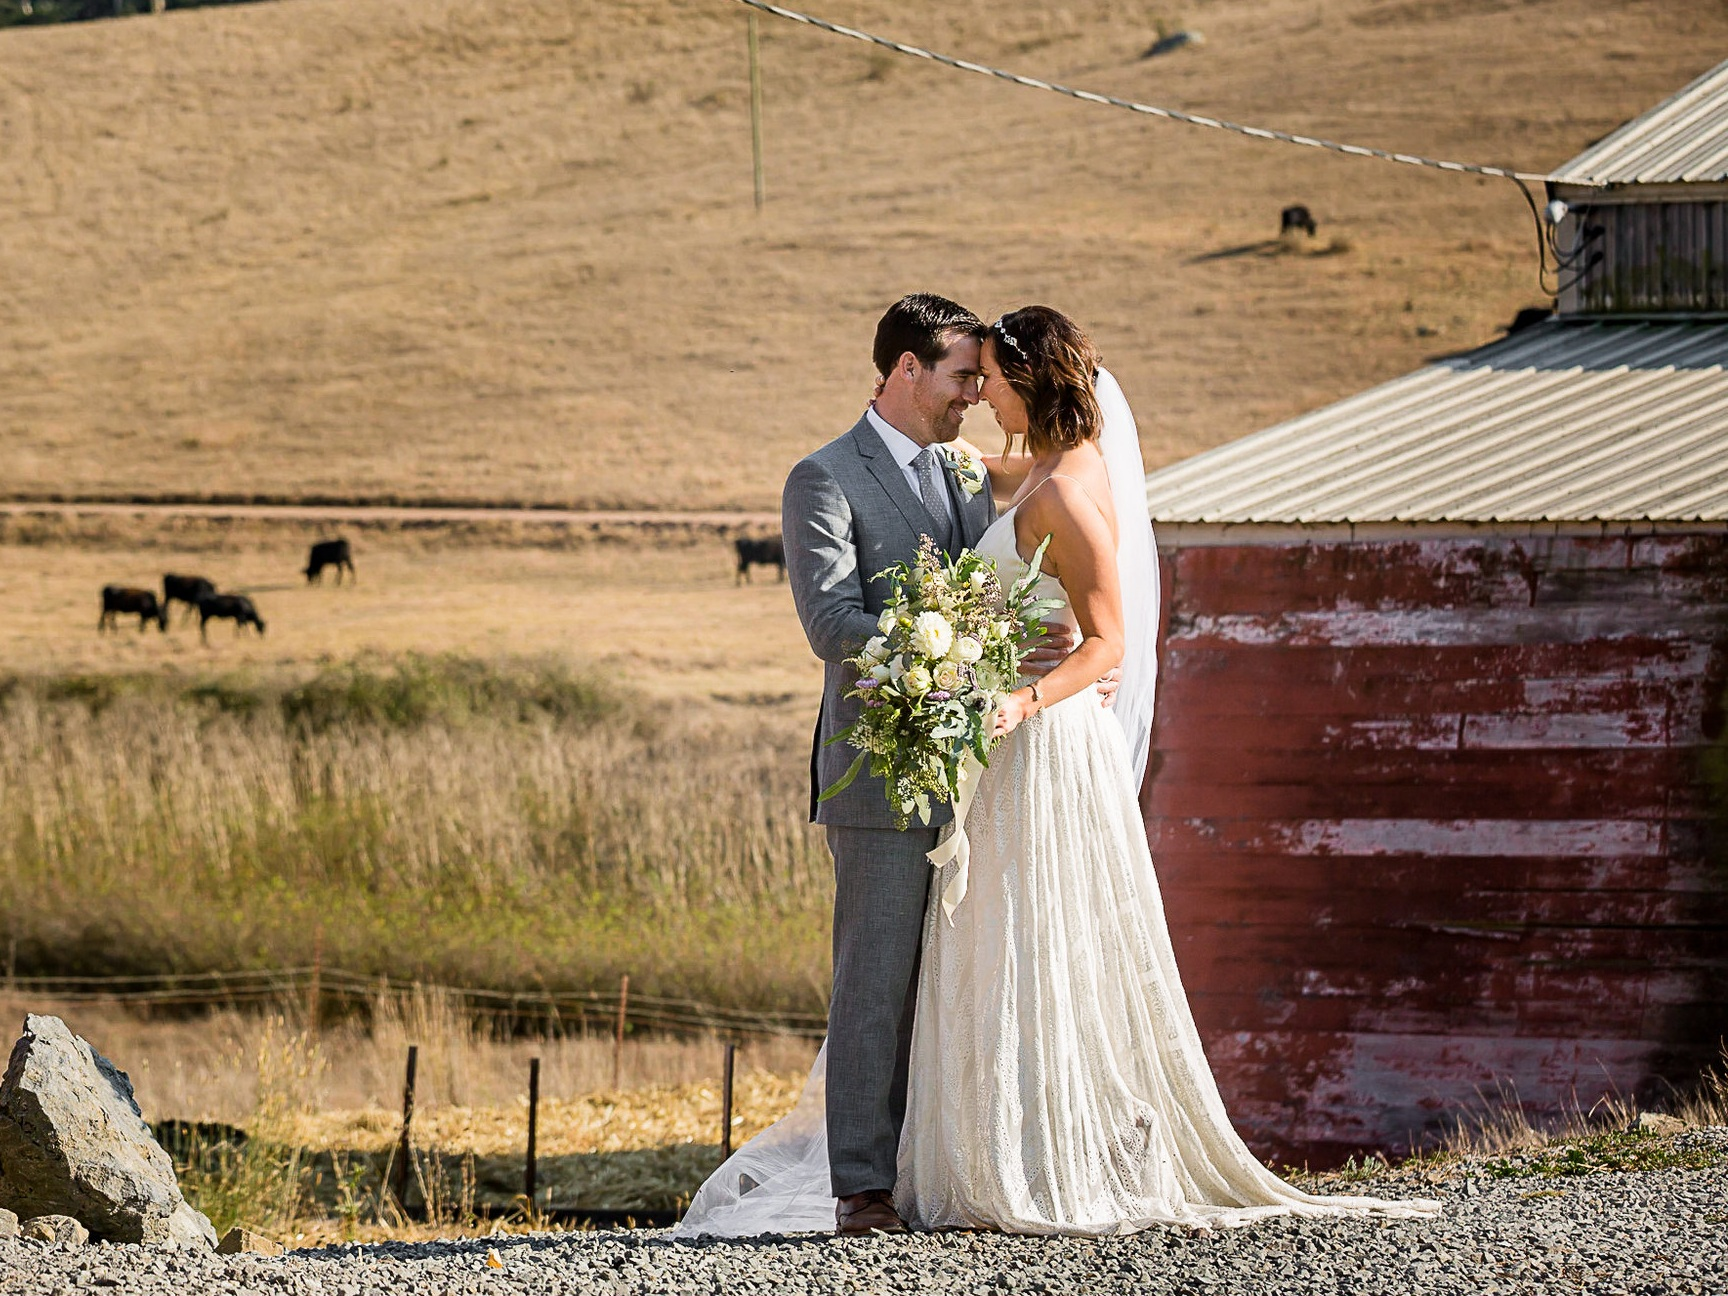 Getting married? We love a celebration and know that bbq makes everyone happy. -